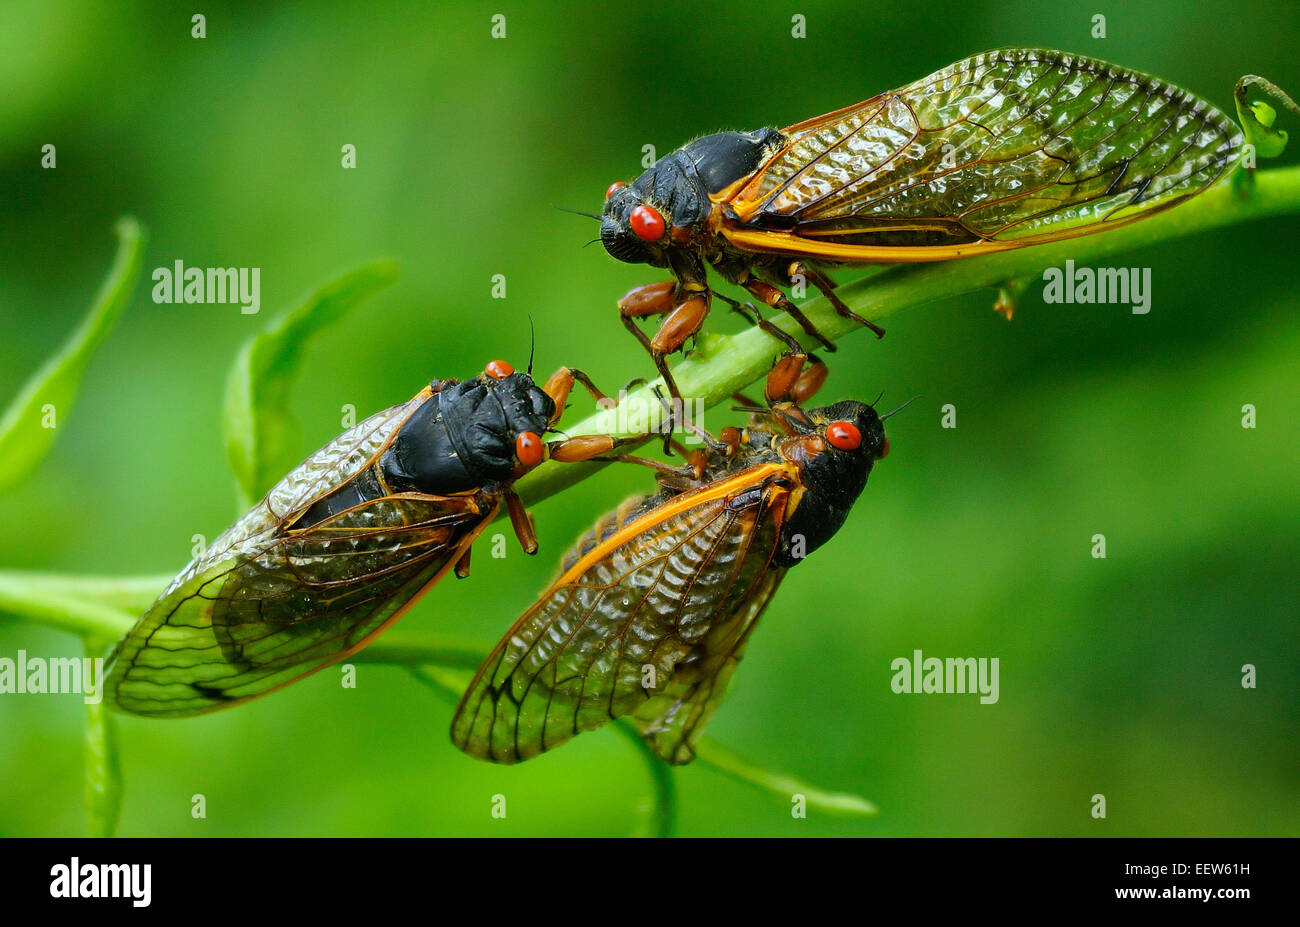 CT USA— June 18, 2013. Three Cicadas gather together on a branch along Driftwood Lane in North Branford, where a colony of Millions of the insects emerged from their 17-year slumber to mate and start the cycle over again. Stock Photo